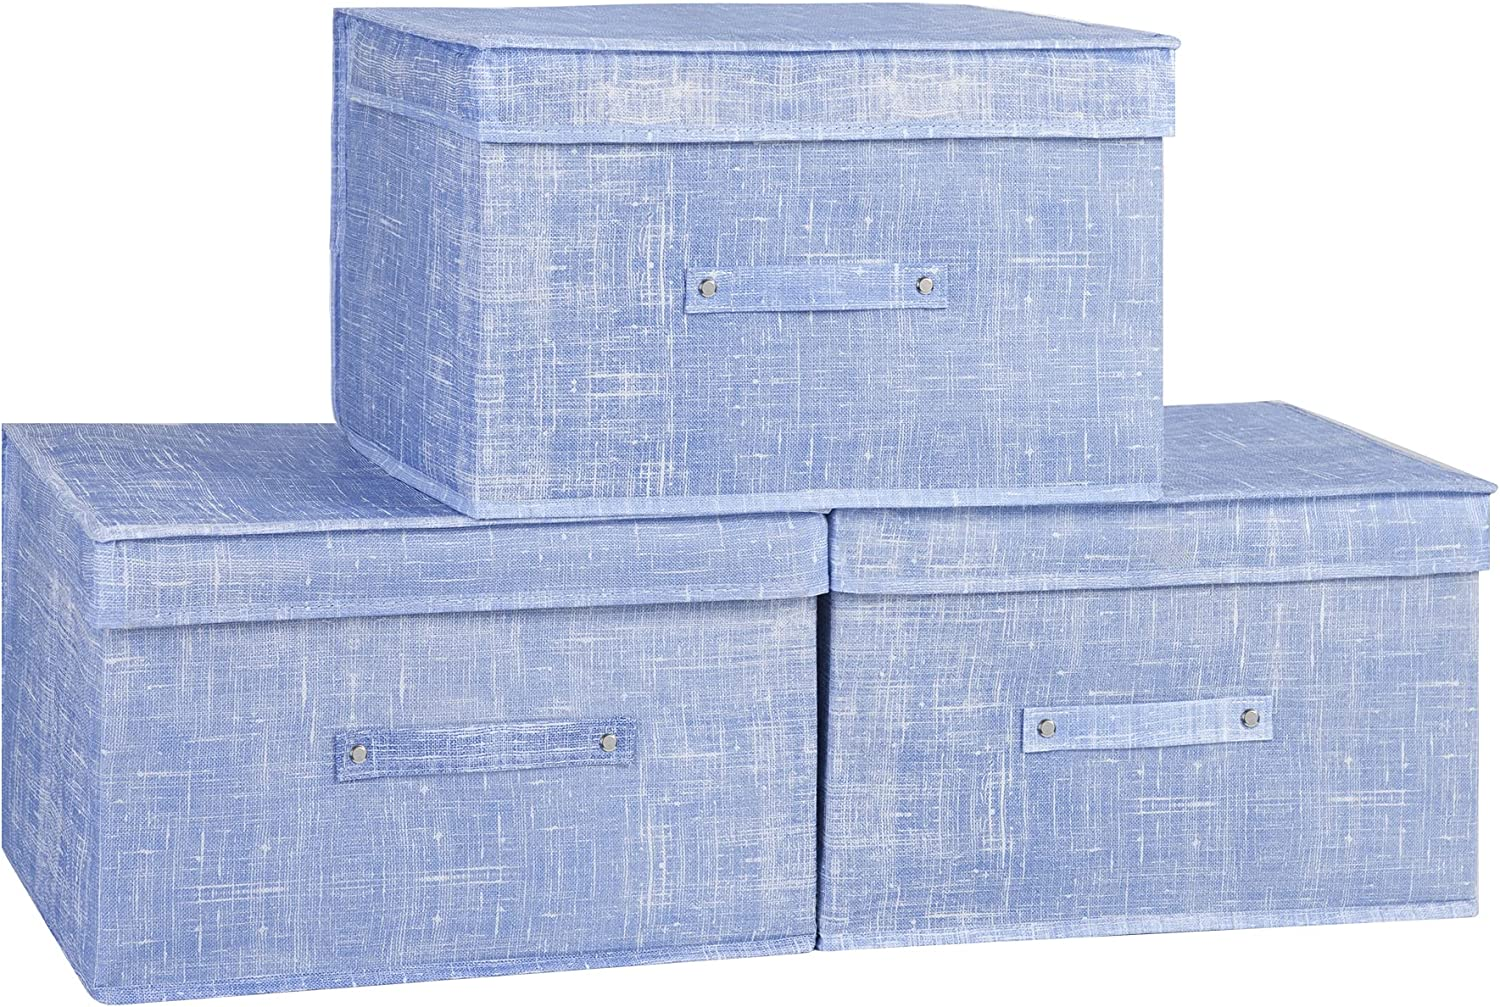 Huygens Foldable Storage Bins with Lids,Fabric Foldable Storage Box,Suitable for Toys,Clothes,Papers,Books and Shelves